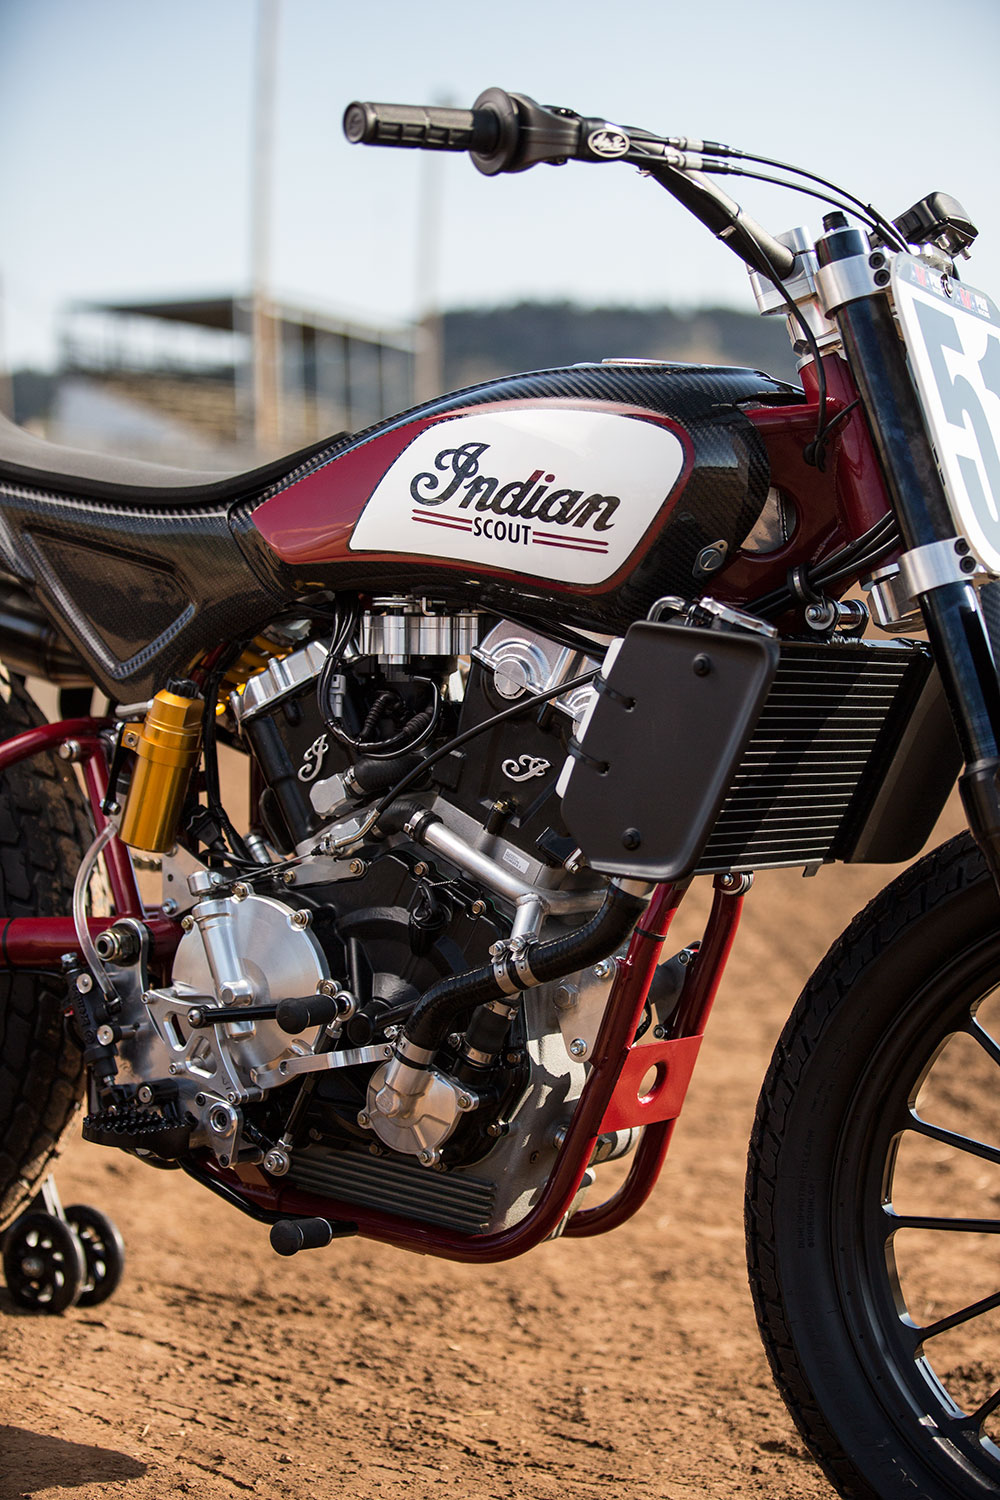 indian-scout-ftr750-motorcycle-embed 0